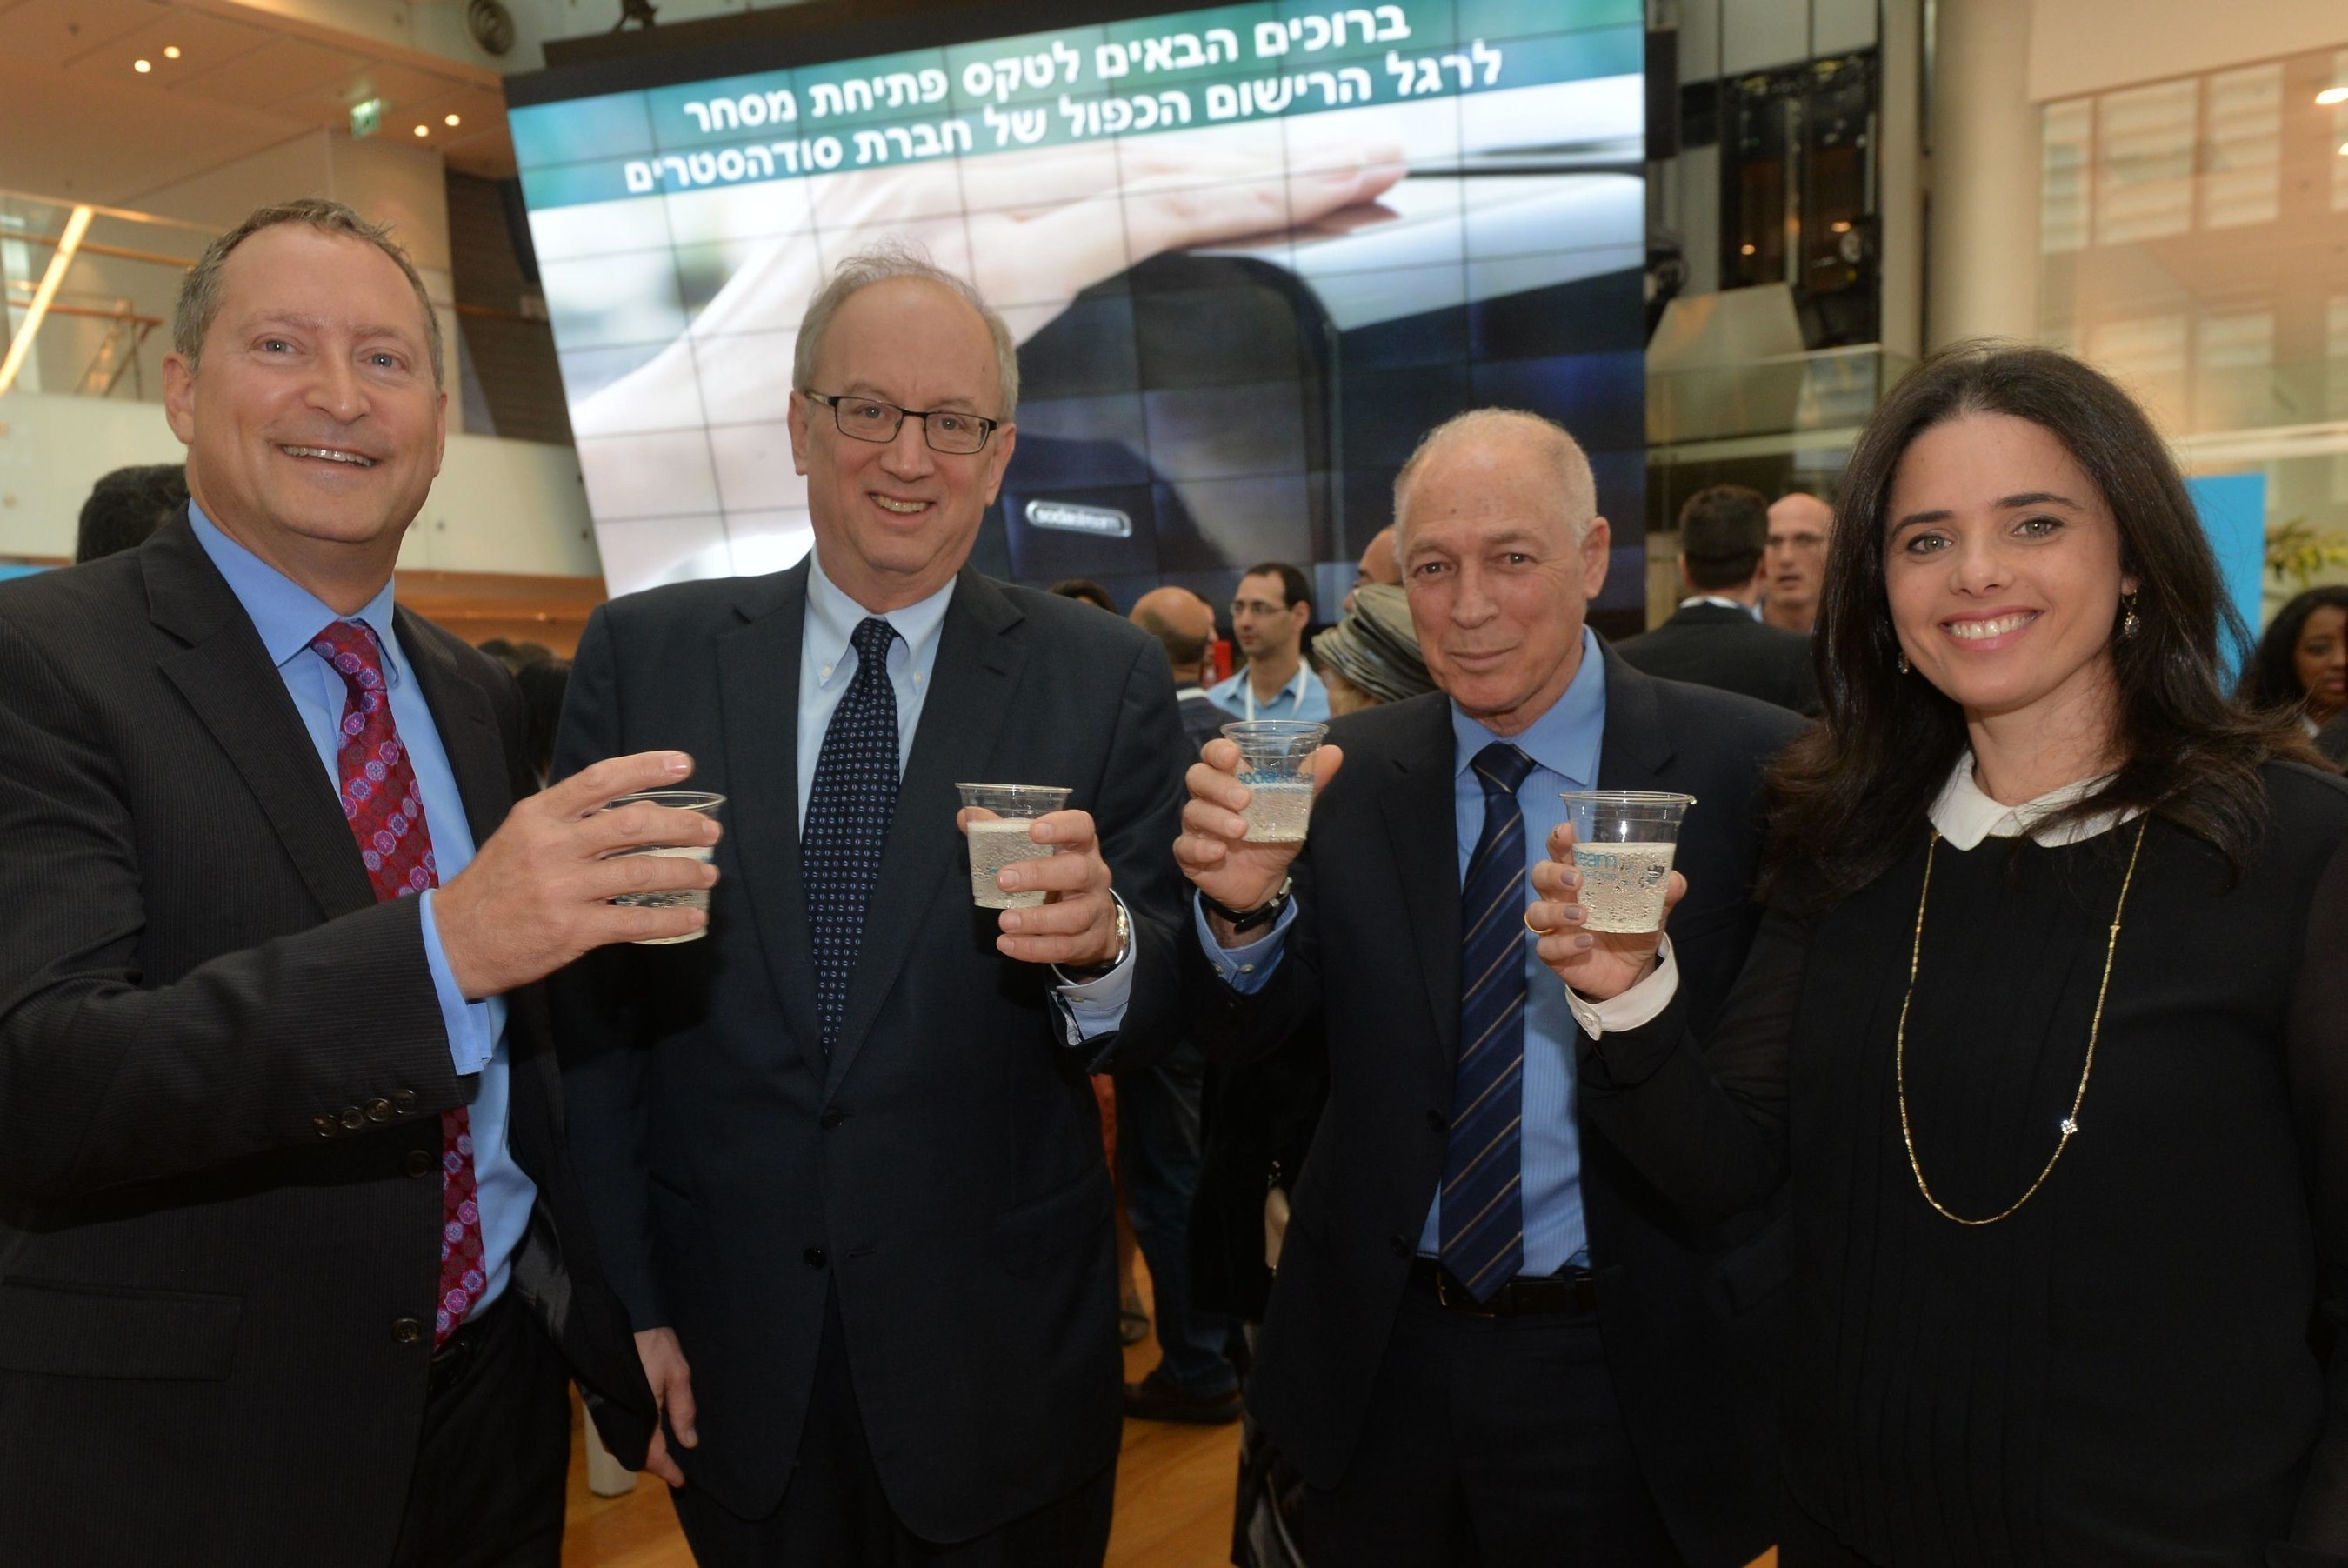 In the photo from right to left: Ayelet Shaked, Minister of Justice; Amnon Neubach, Chairman of the Board of TASE; Yossi Beinart, TASE CEO and Daniel Birnbaum, CEO of SodaStream. Photo: Guy Asiag (PRNewsFoto/Tel Aviv Stock Exchange) (PRNewsFoto/Tel Aviv Stock Exchange)